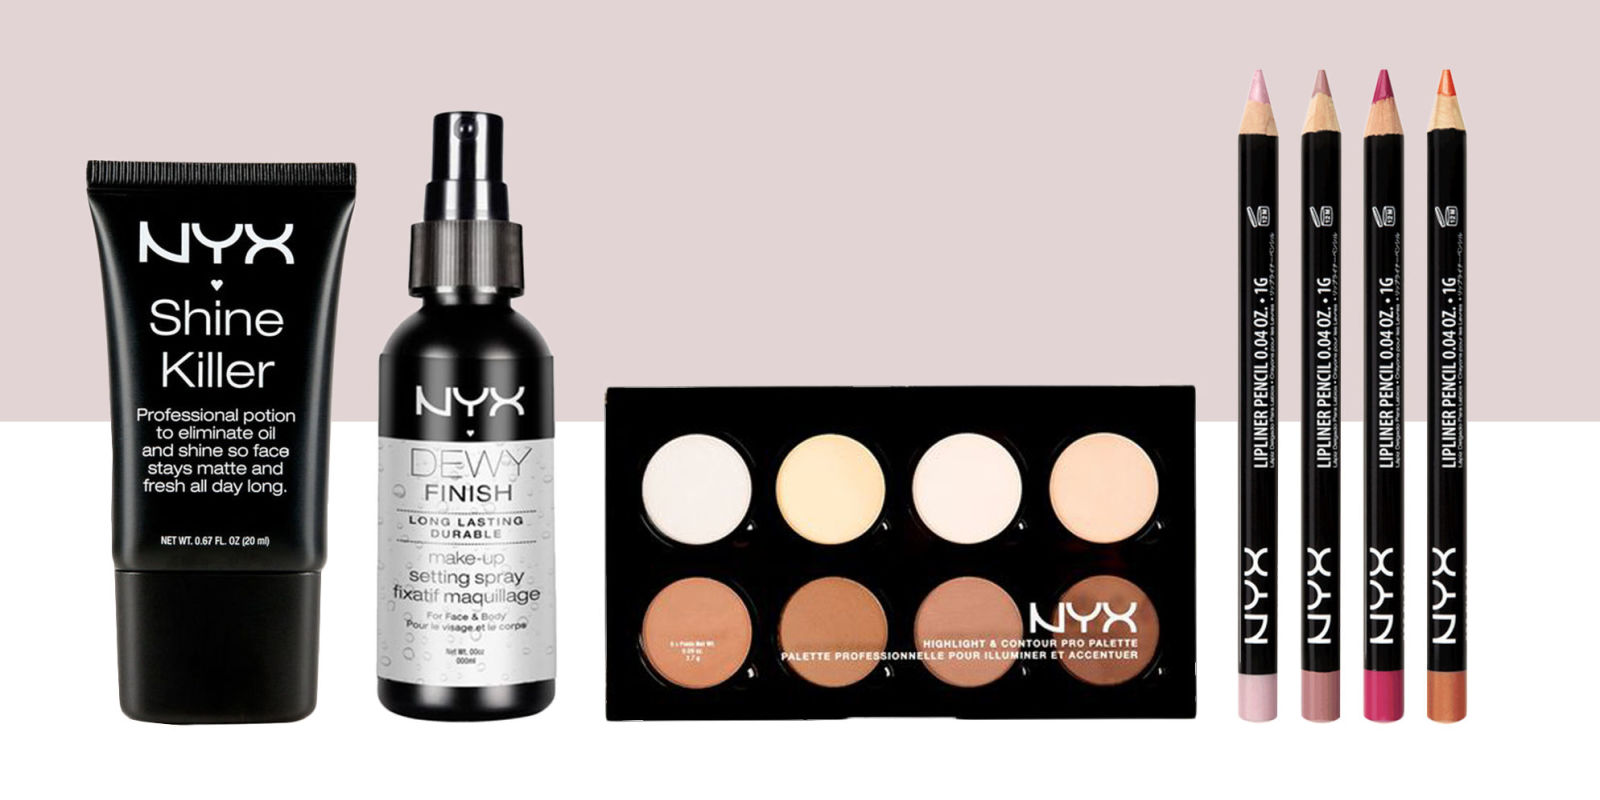 Is nyx a good makeup brand